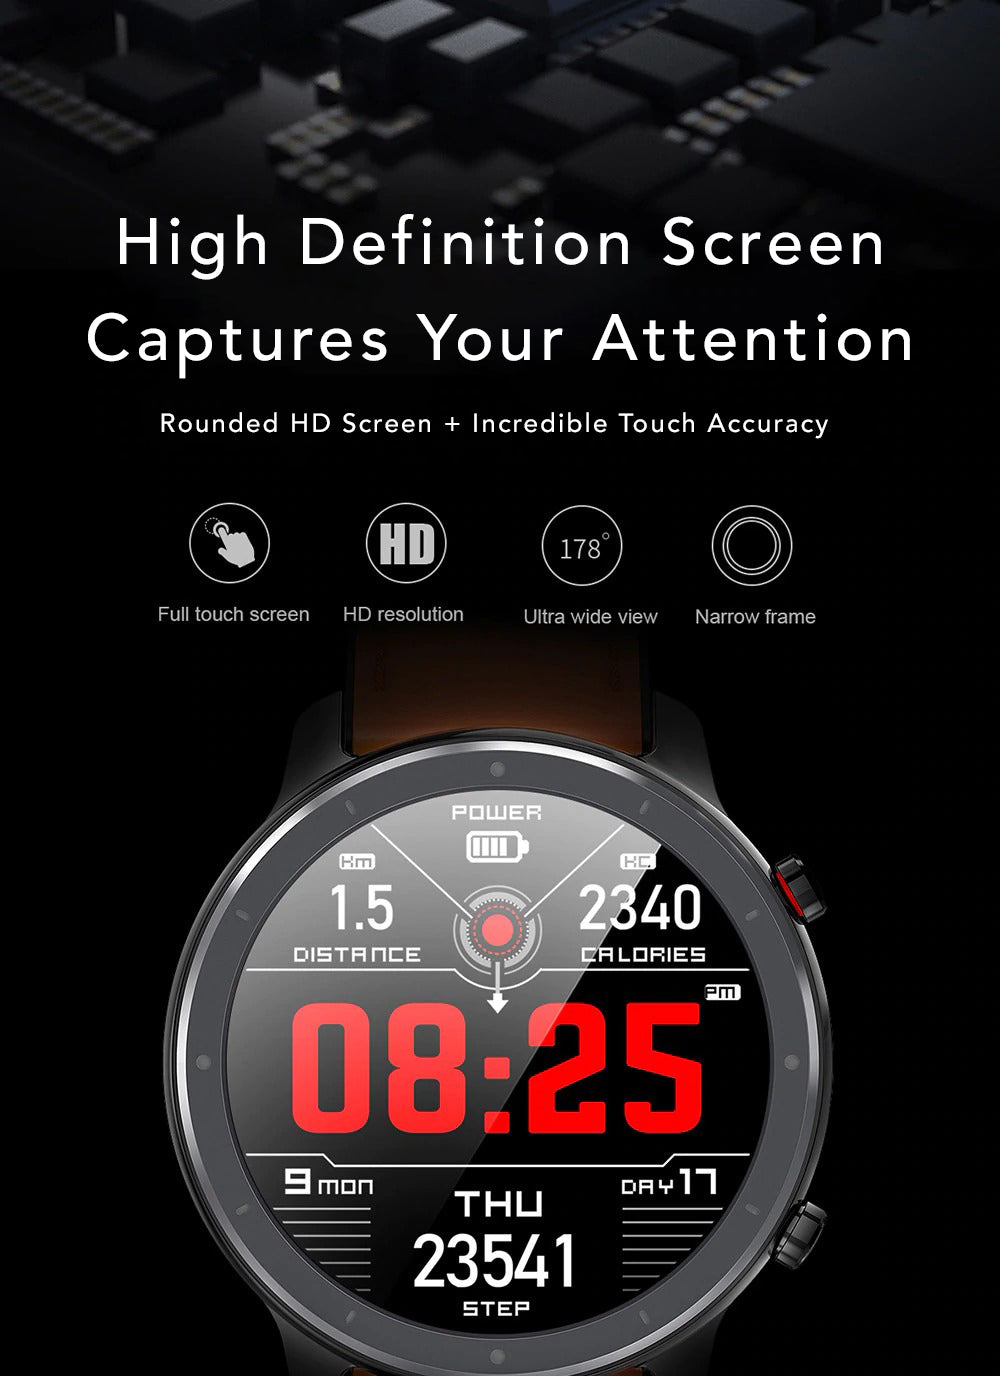 X9 Beretta Smart Watch Make Rounded High Definition ScreenCaptures Your Attention